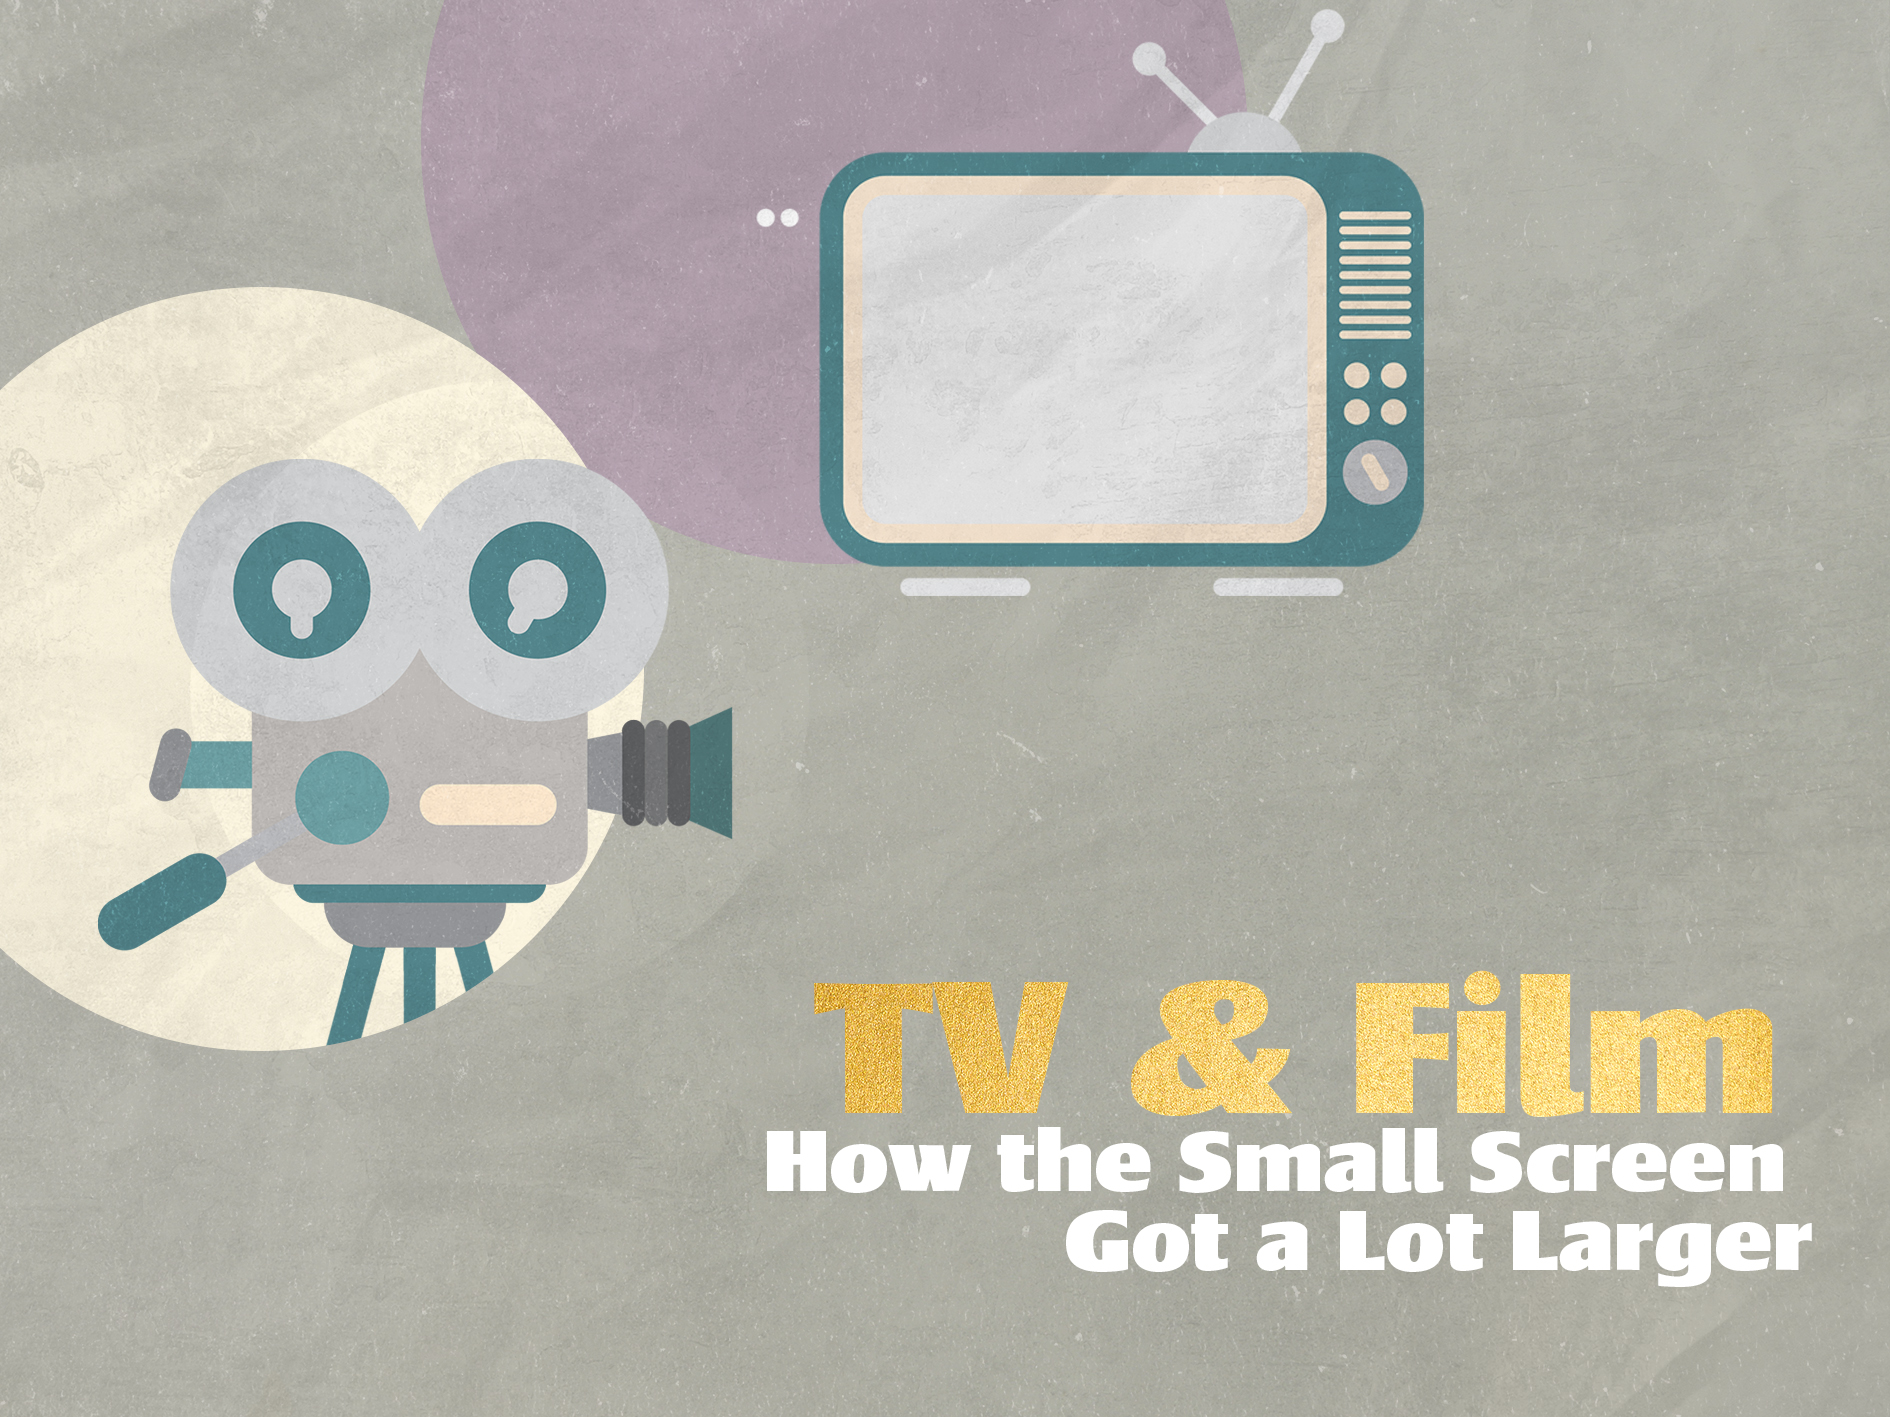 TV & Film: How the Small Screen Got a Lot Larger